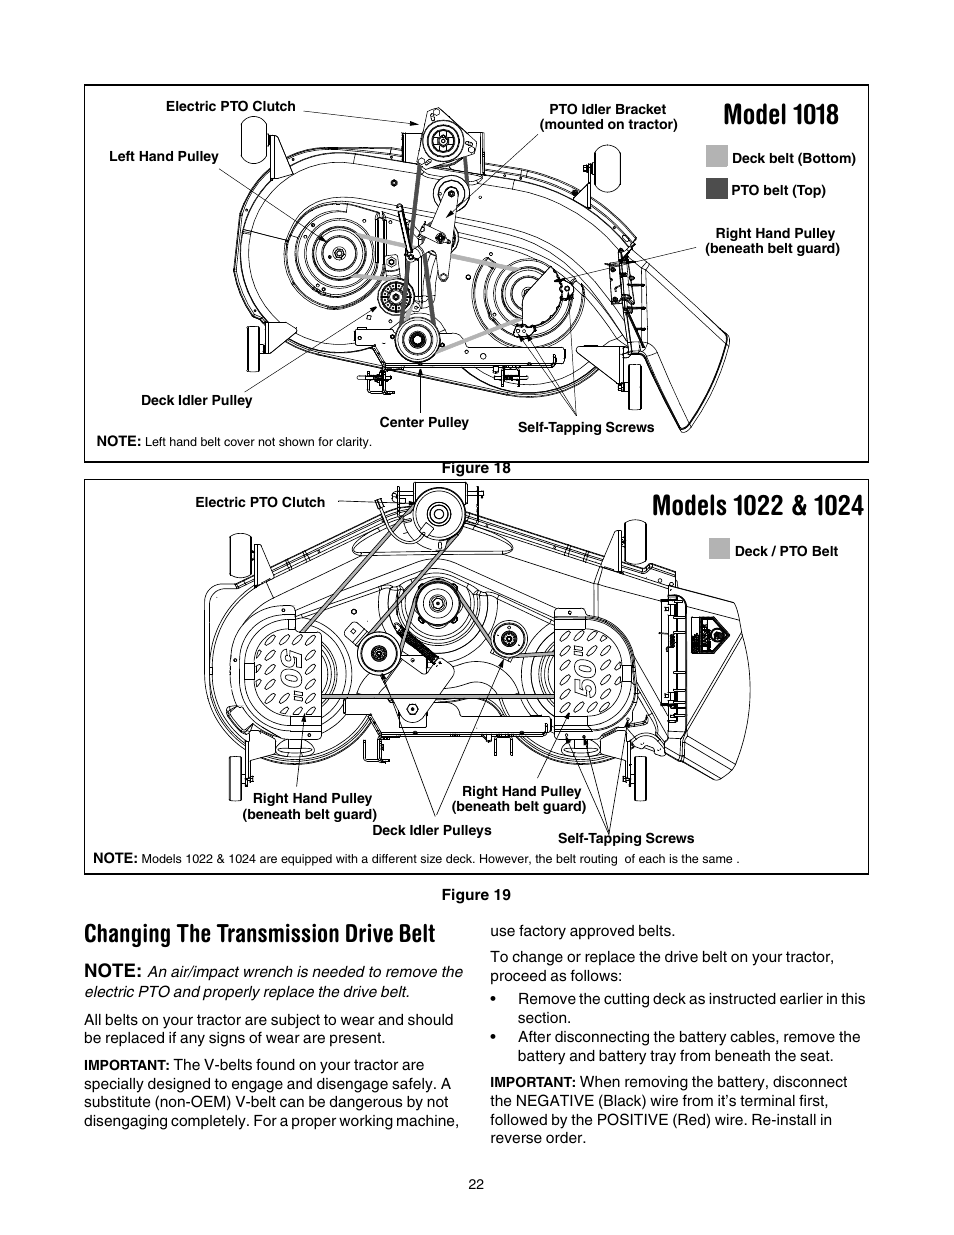 model 1018 changing the transmission drive belt cub cadet lt1022 rh manualsdir com cub cadet lt1018 operator's manual cub cadet lt1018 repair manual